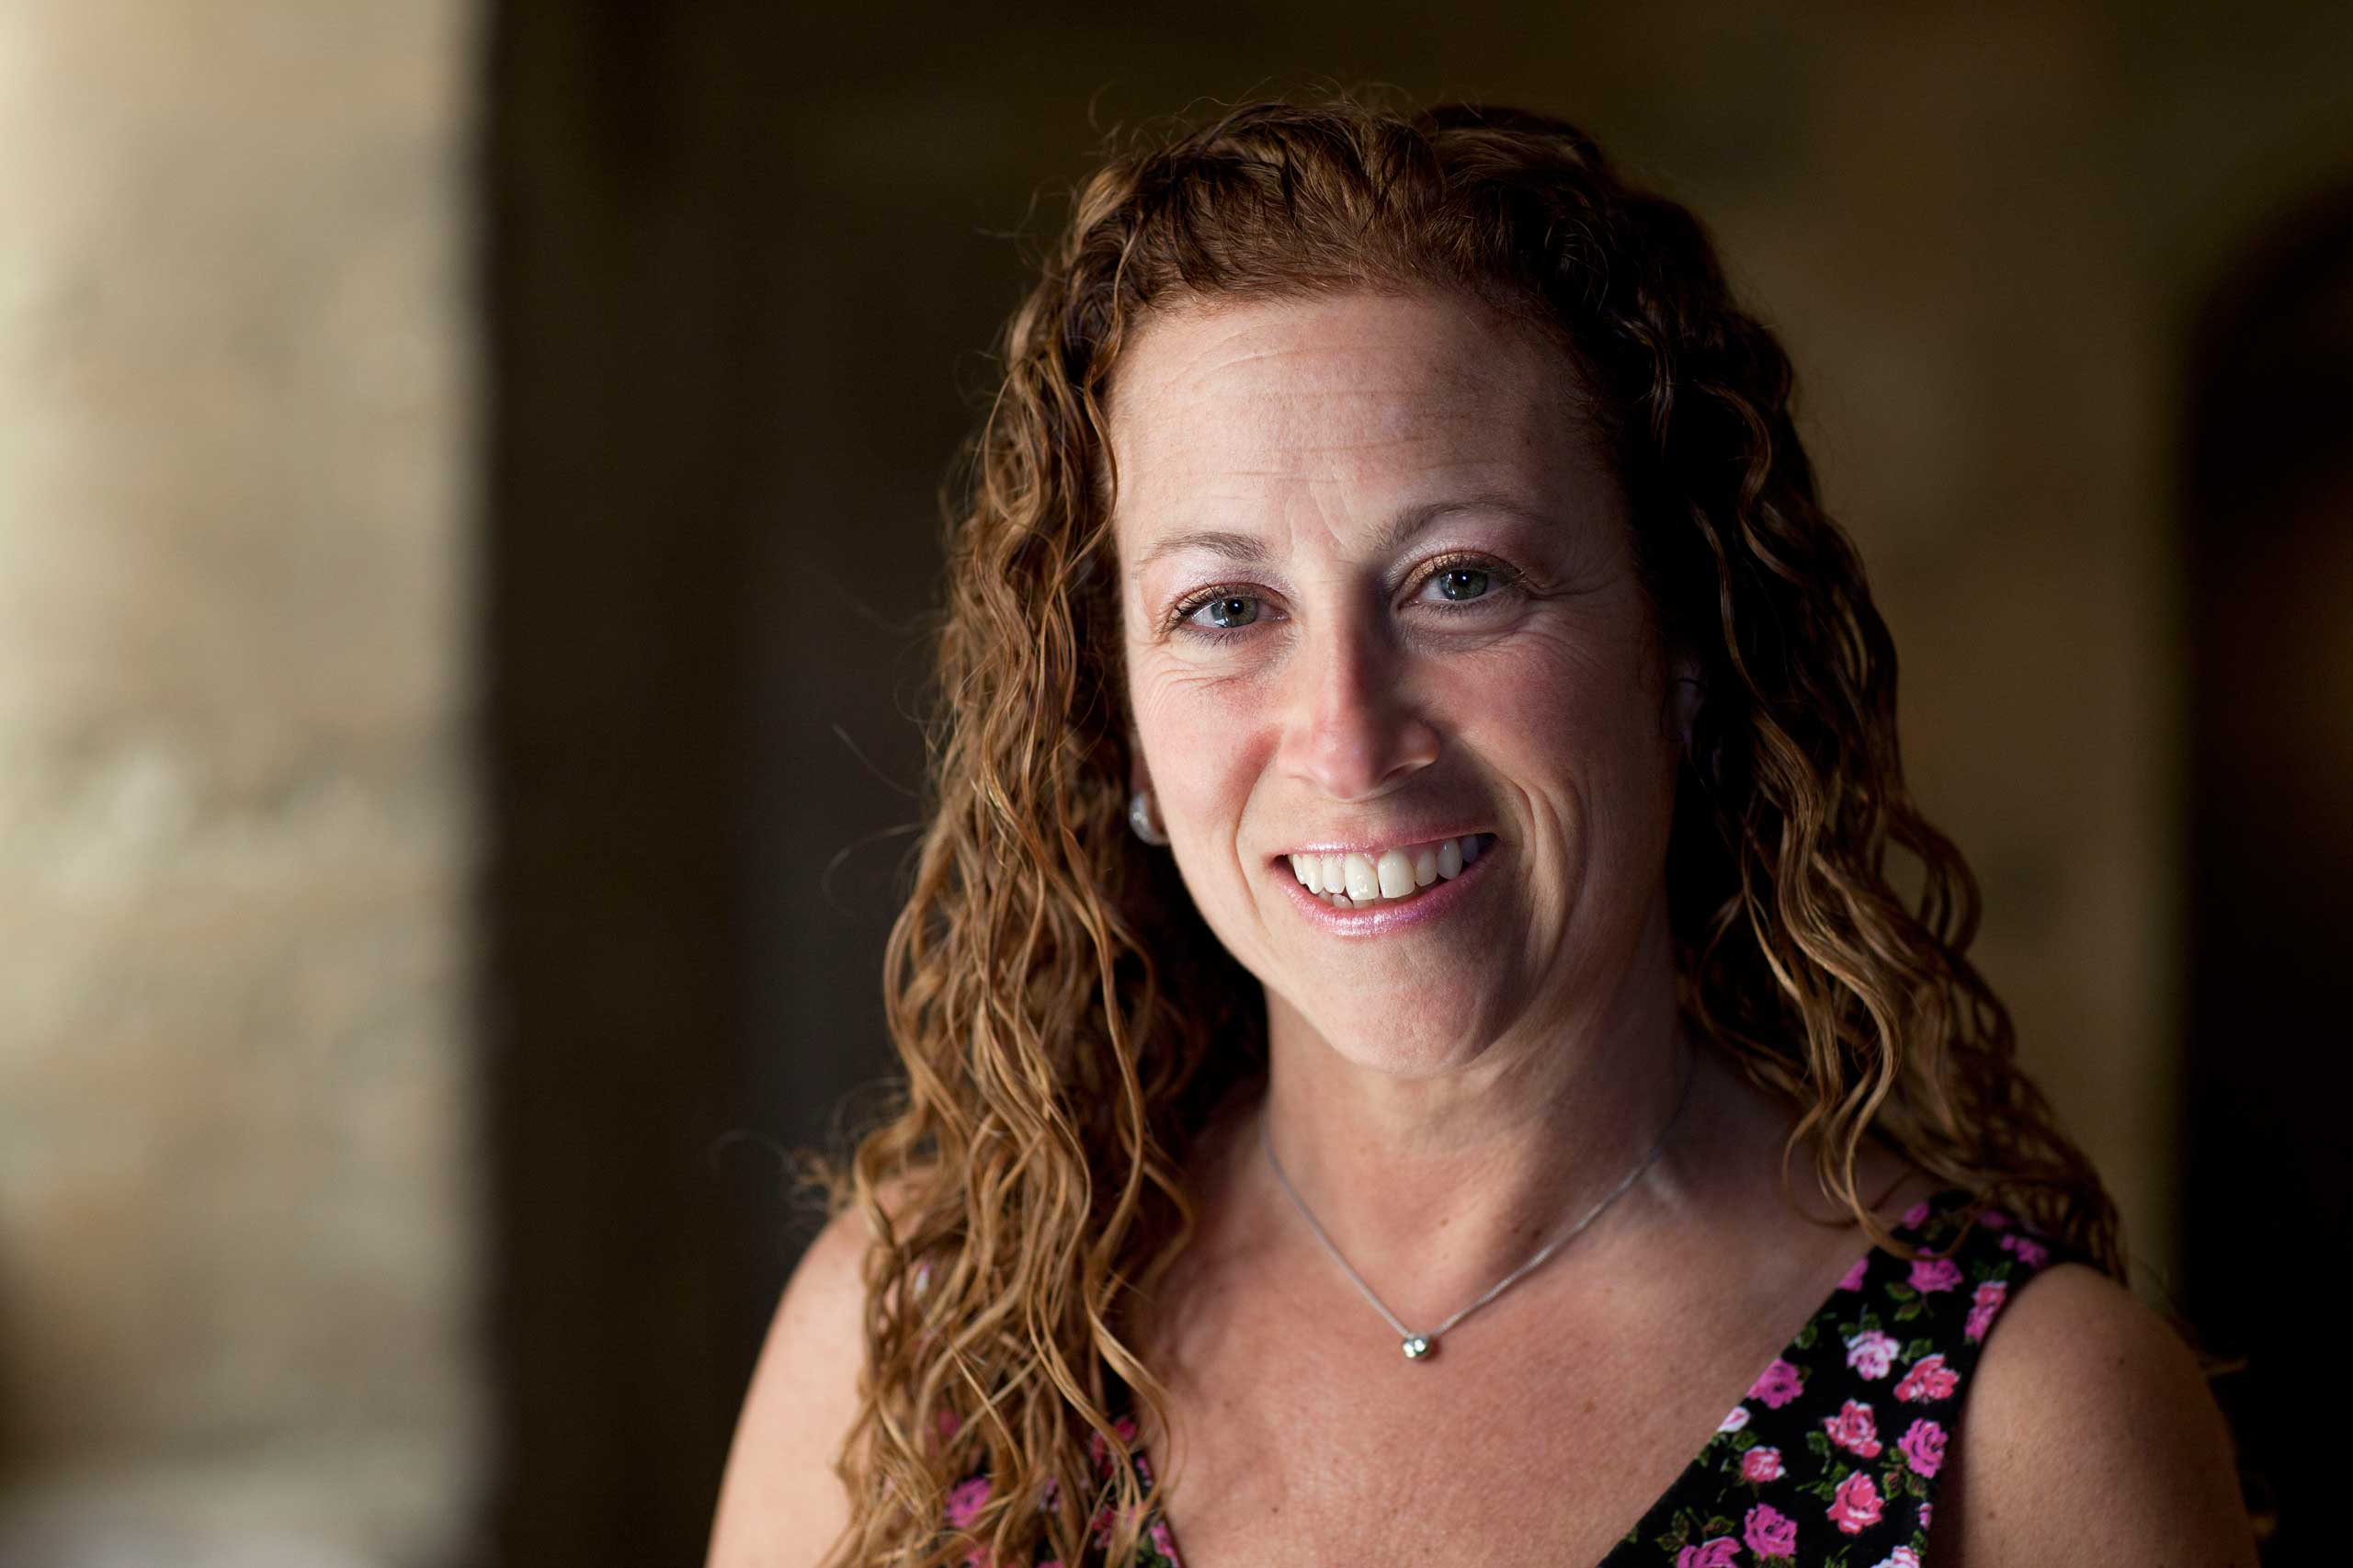 Writer Jodi Picoult poses for a portrait at the Oxford Literary Festival on March 28, 2012 in Oxford